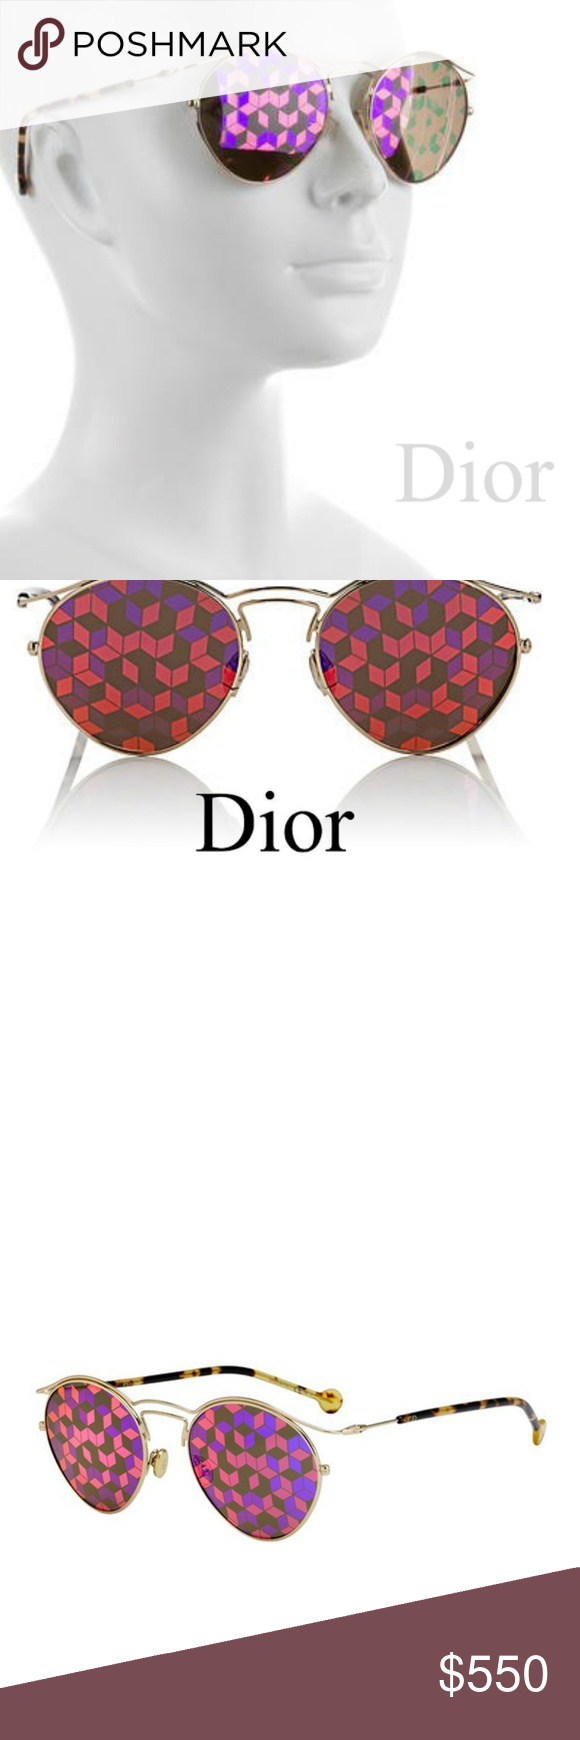 6185f3464a8c5 NEW Dior  Origins 1  Geometric Prism Sunglasses New with hard protective  case. Crafted of polished goldtone metal